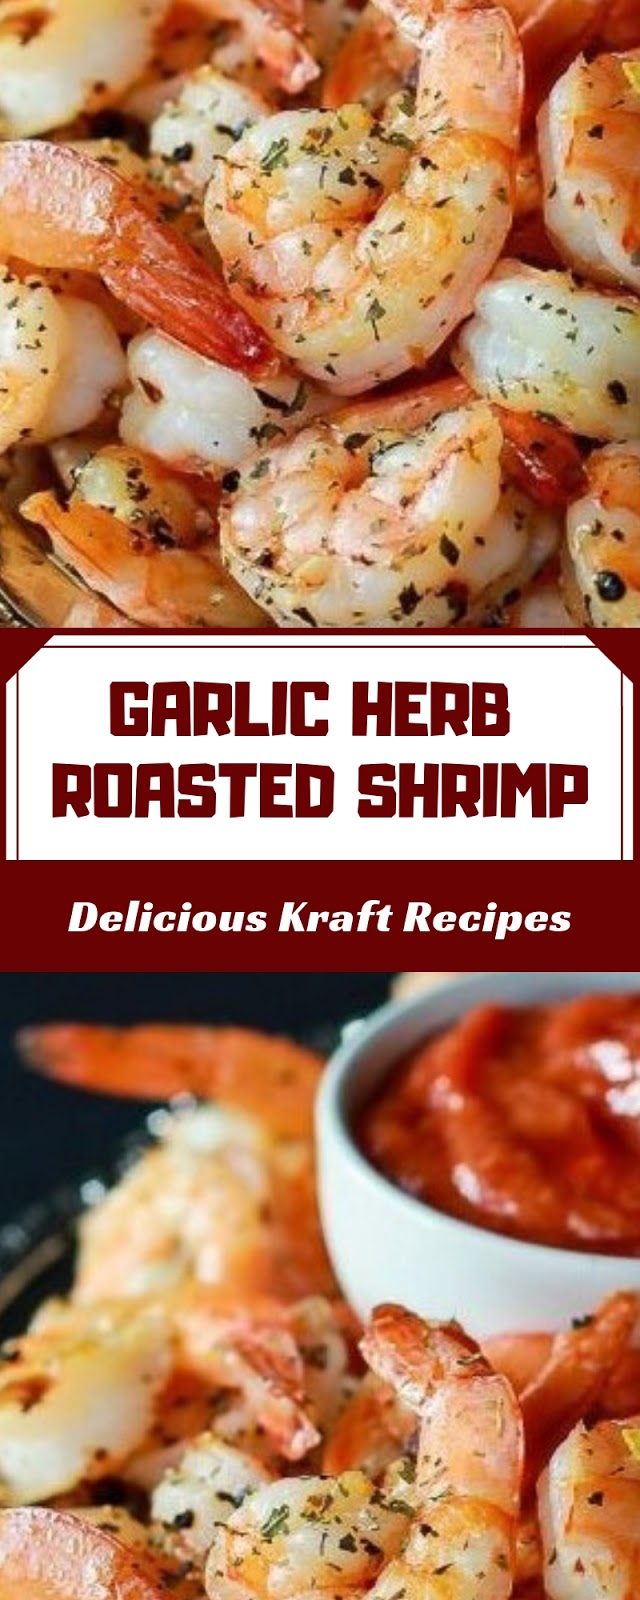 GARLIC HERB ROASTED SHRIMP WITH HOMEMADE COCKTAILS SAUCE